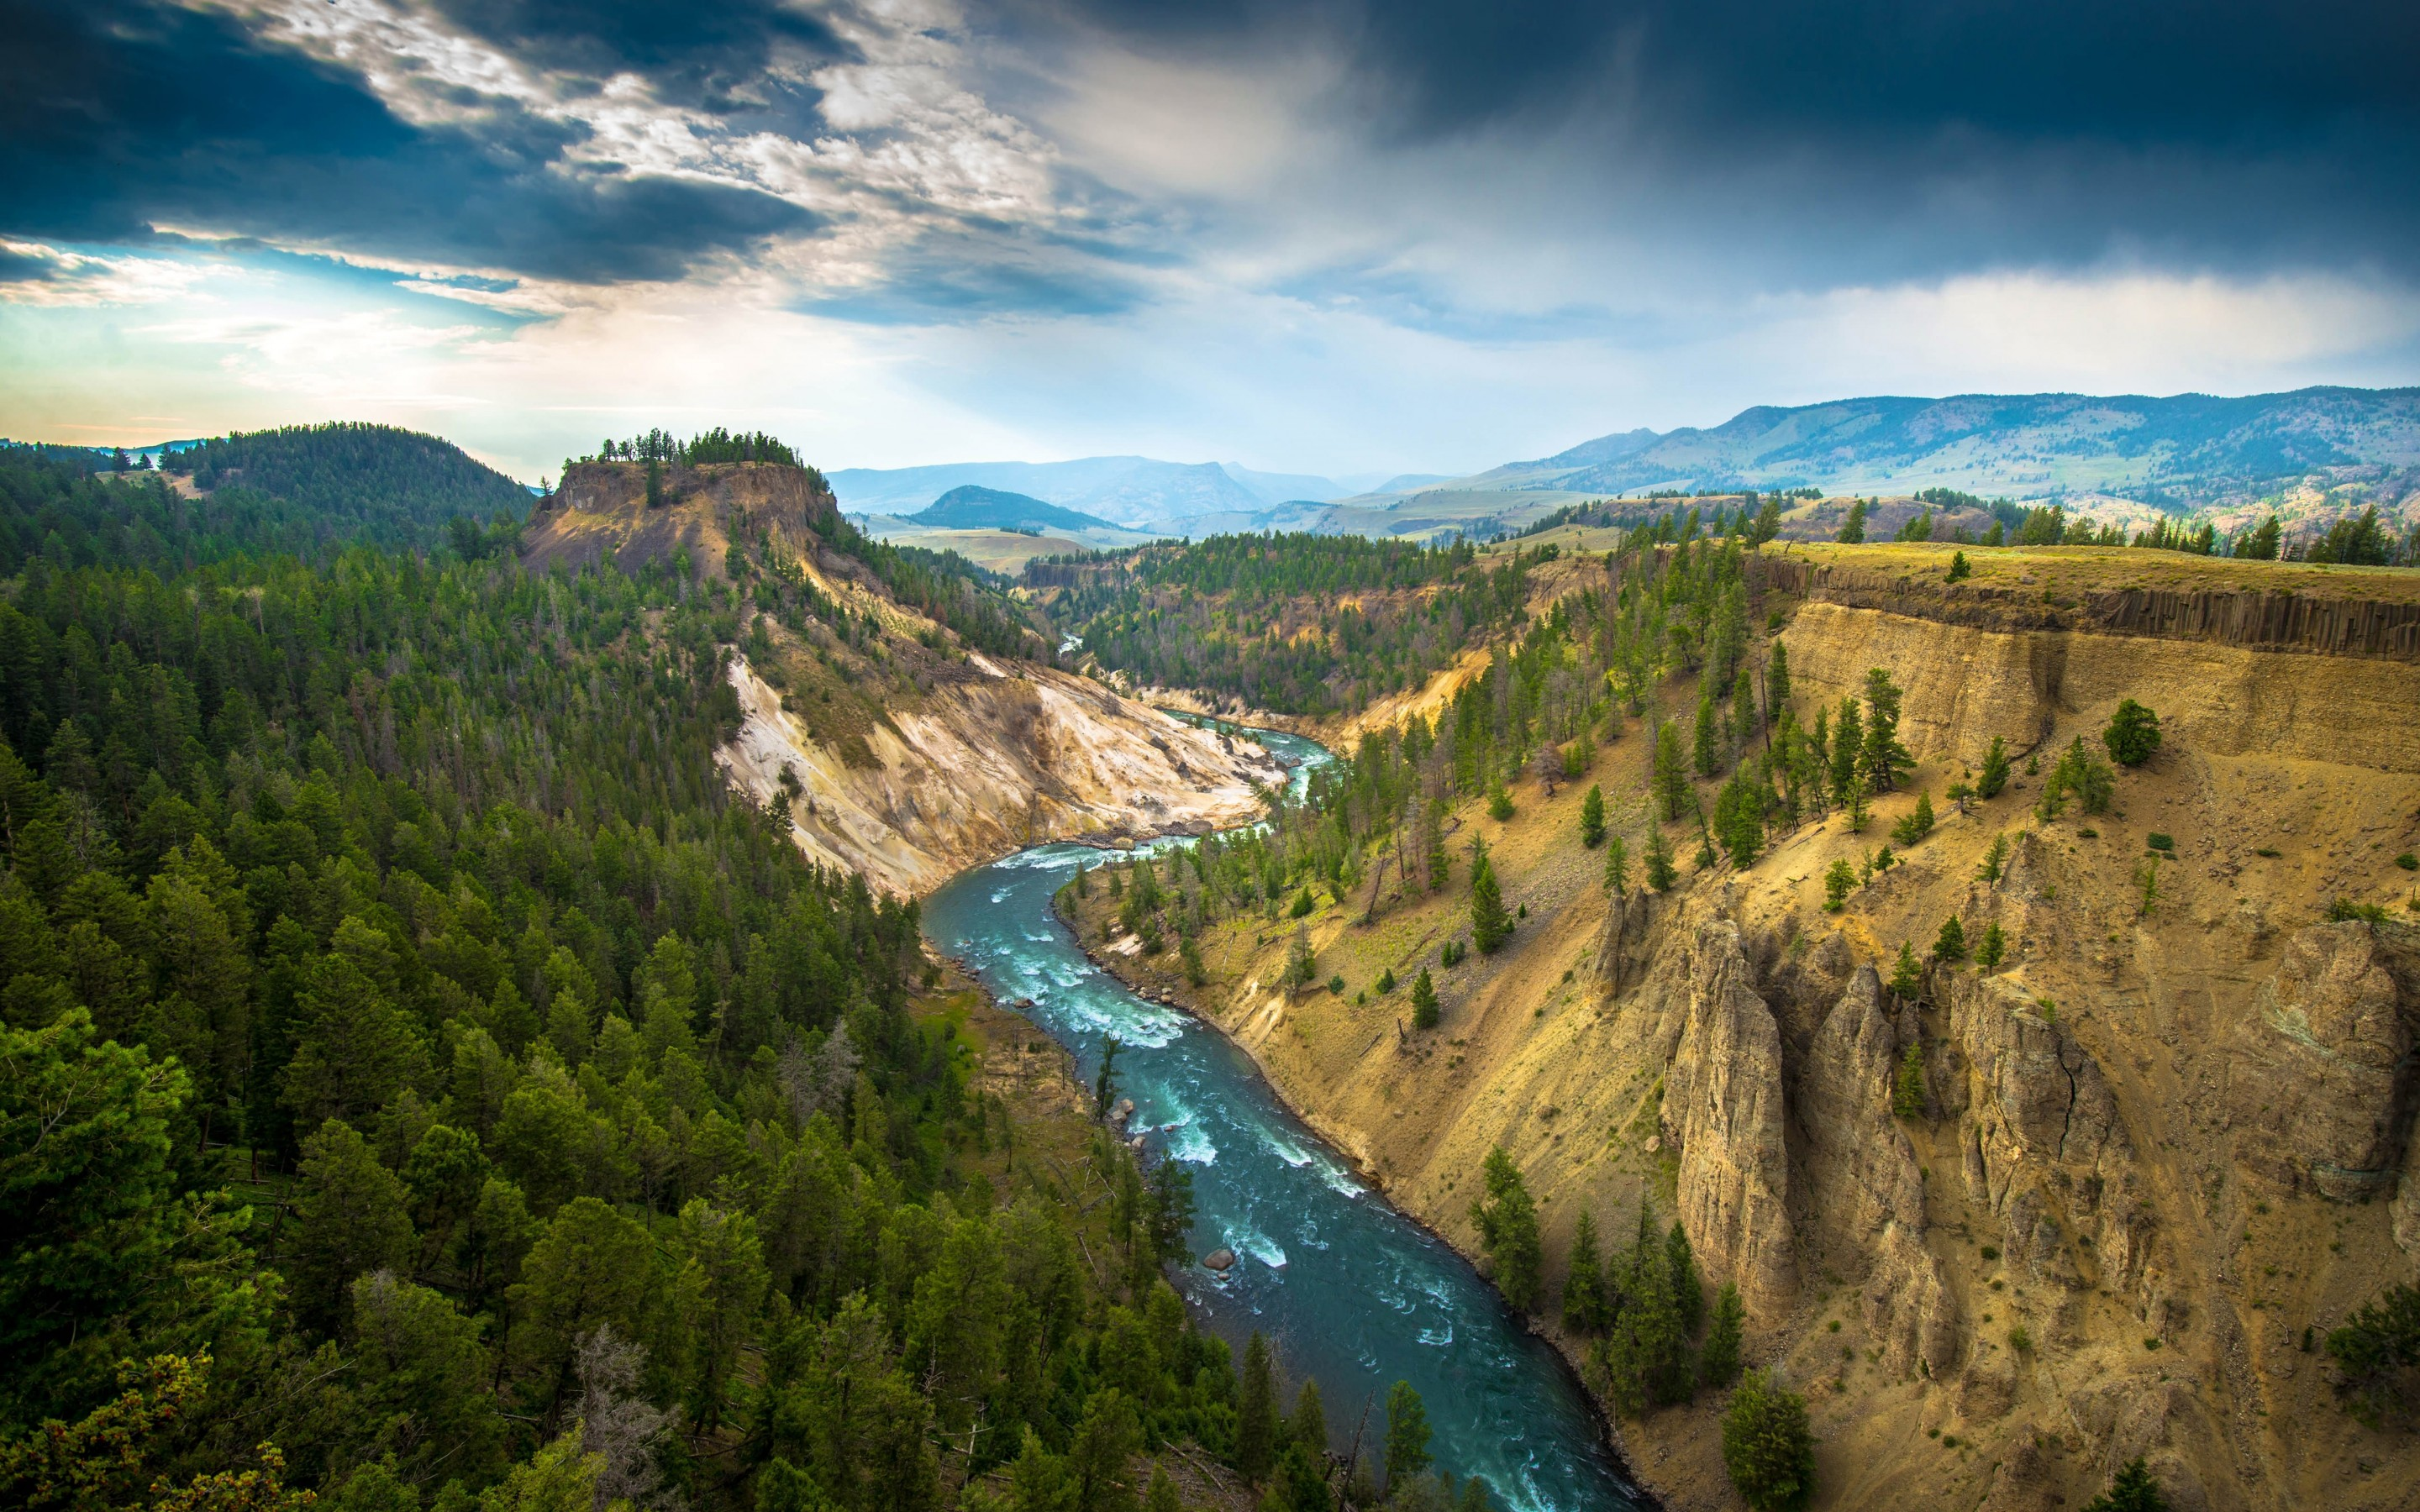 The River, Grand Canyon of Yellowstone National Park, USA Wallpaper for Desktop 2880x1800